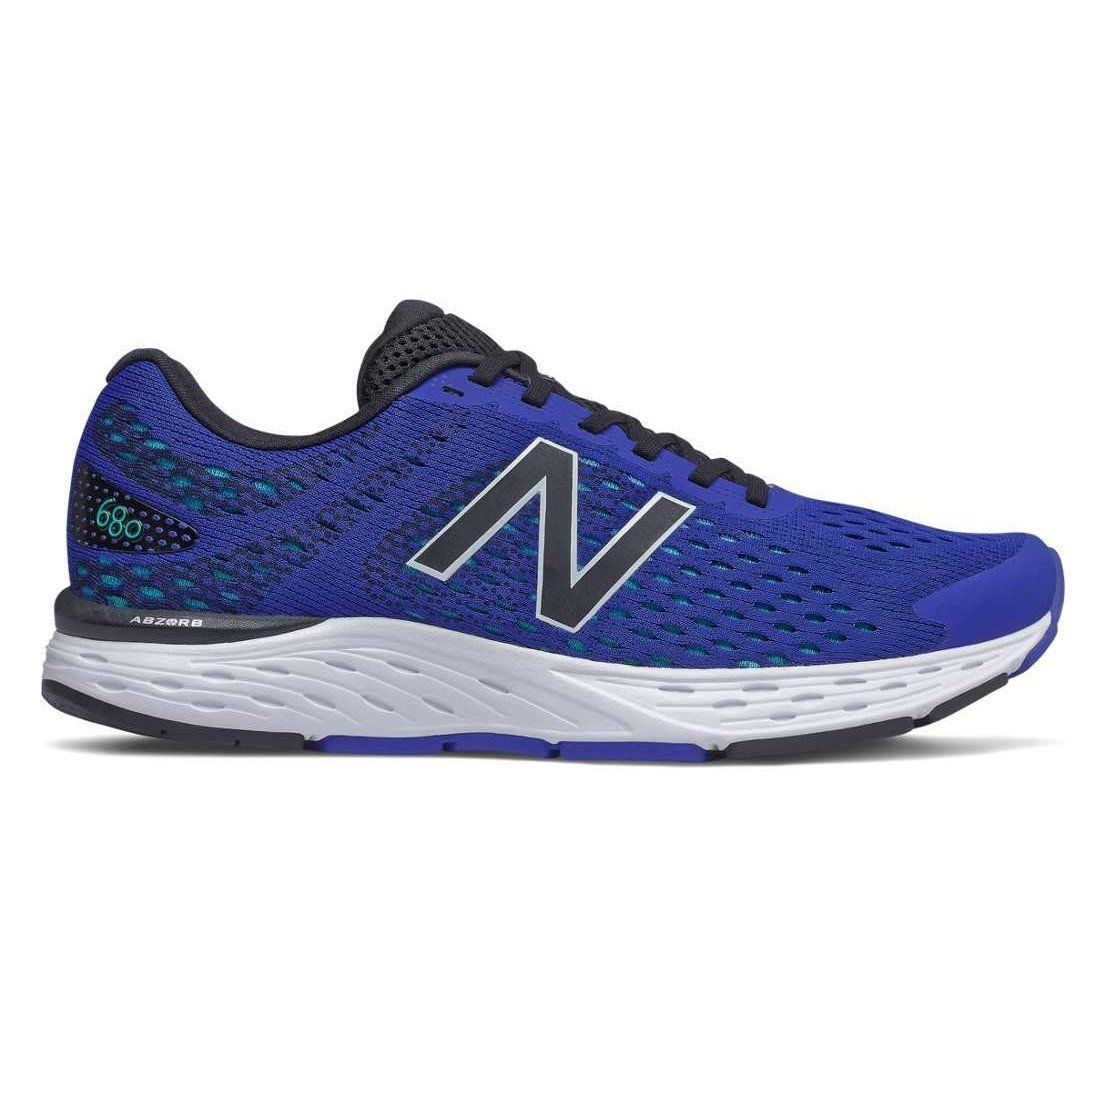 New Balance Mens 680v6 - Cobalt Blue with Tidepool SP-Footwear-Mens New Balance